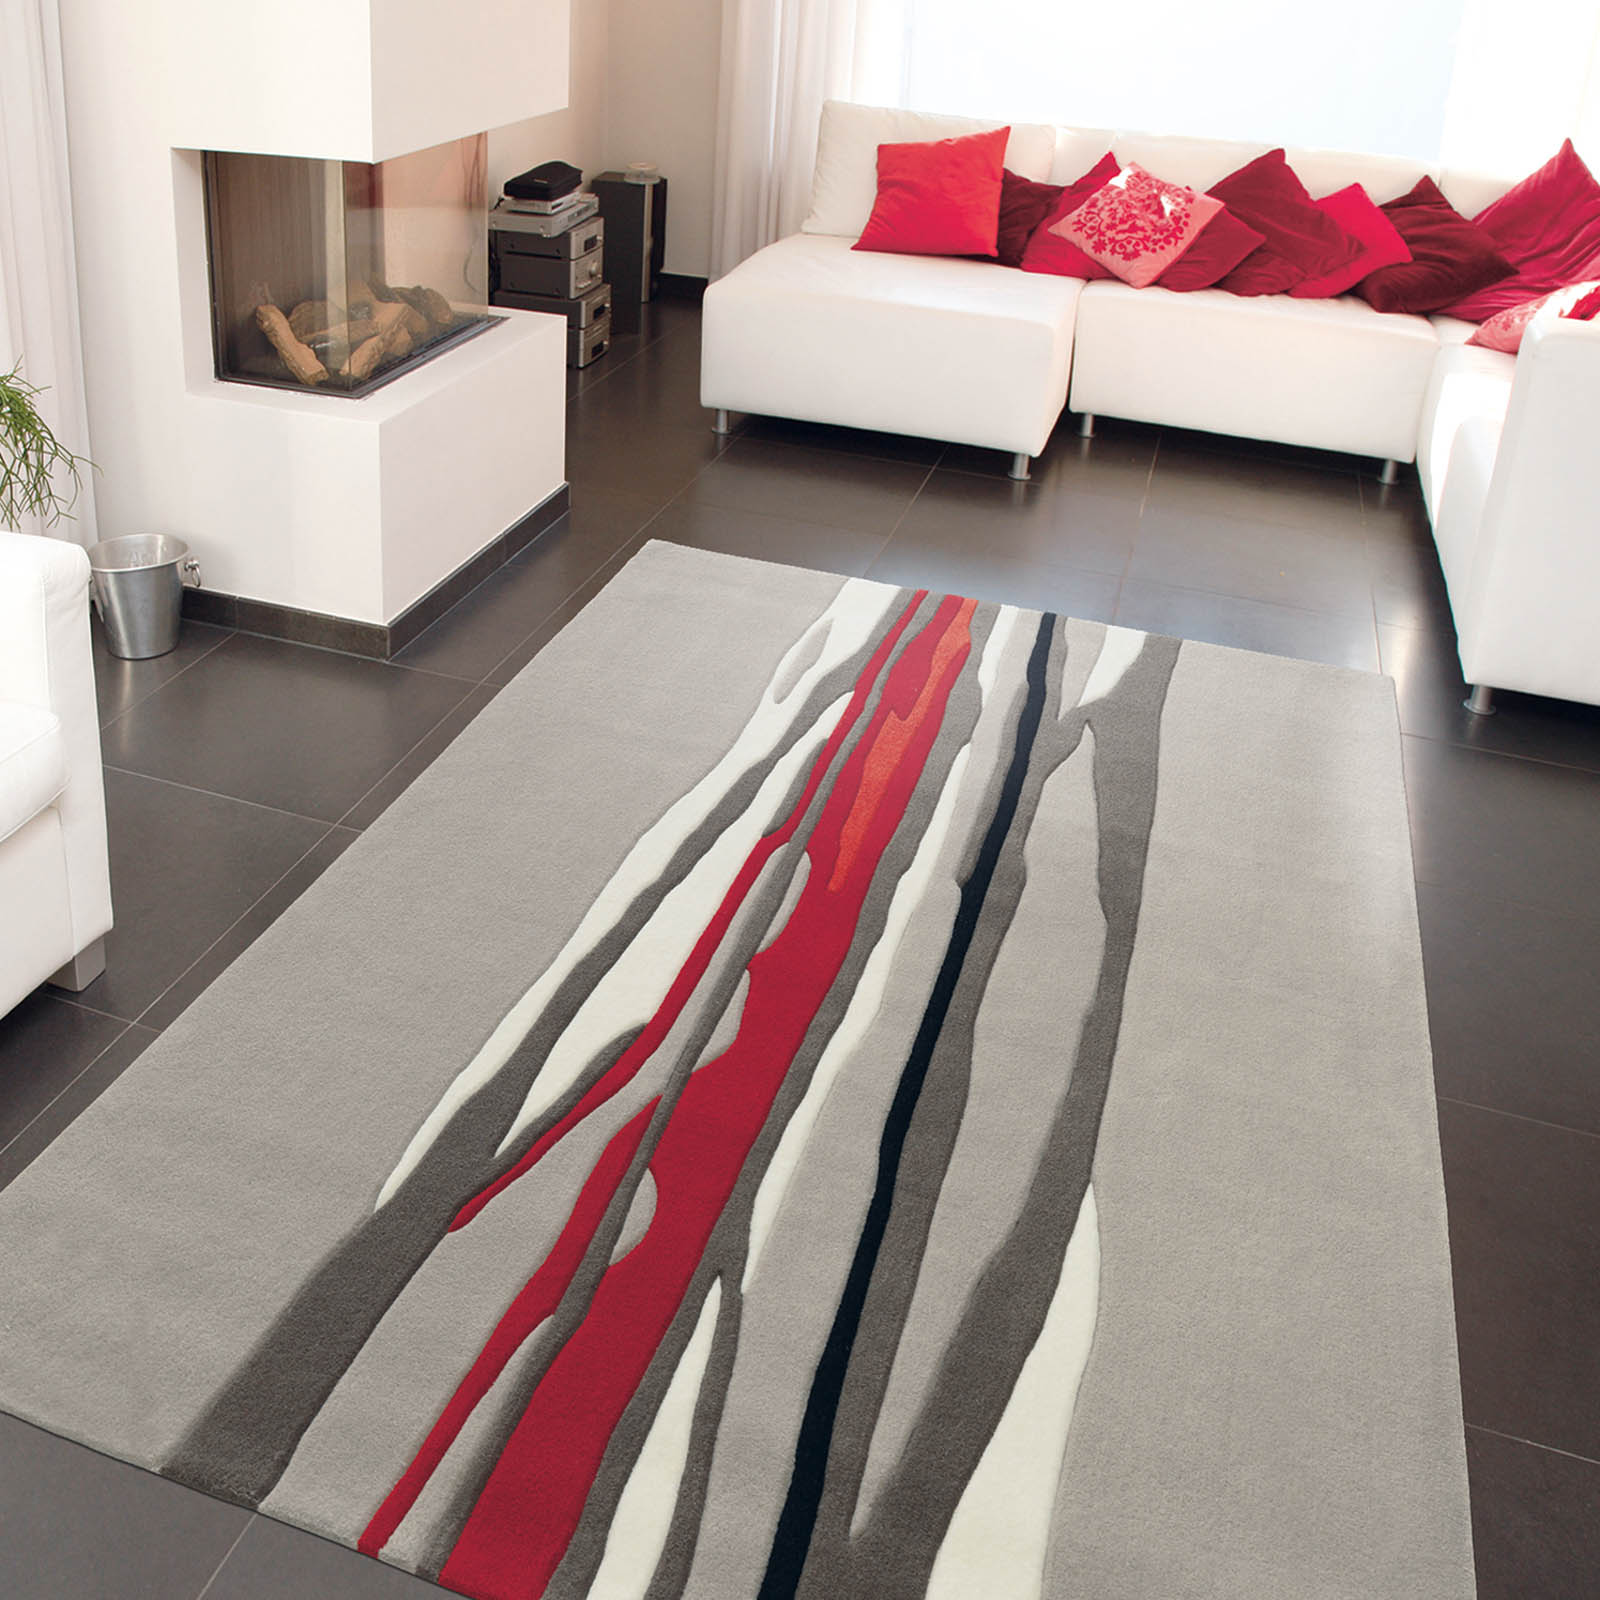 Red Trace Rugs 3088 65 in Grey